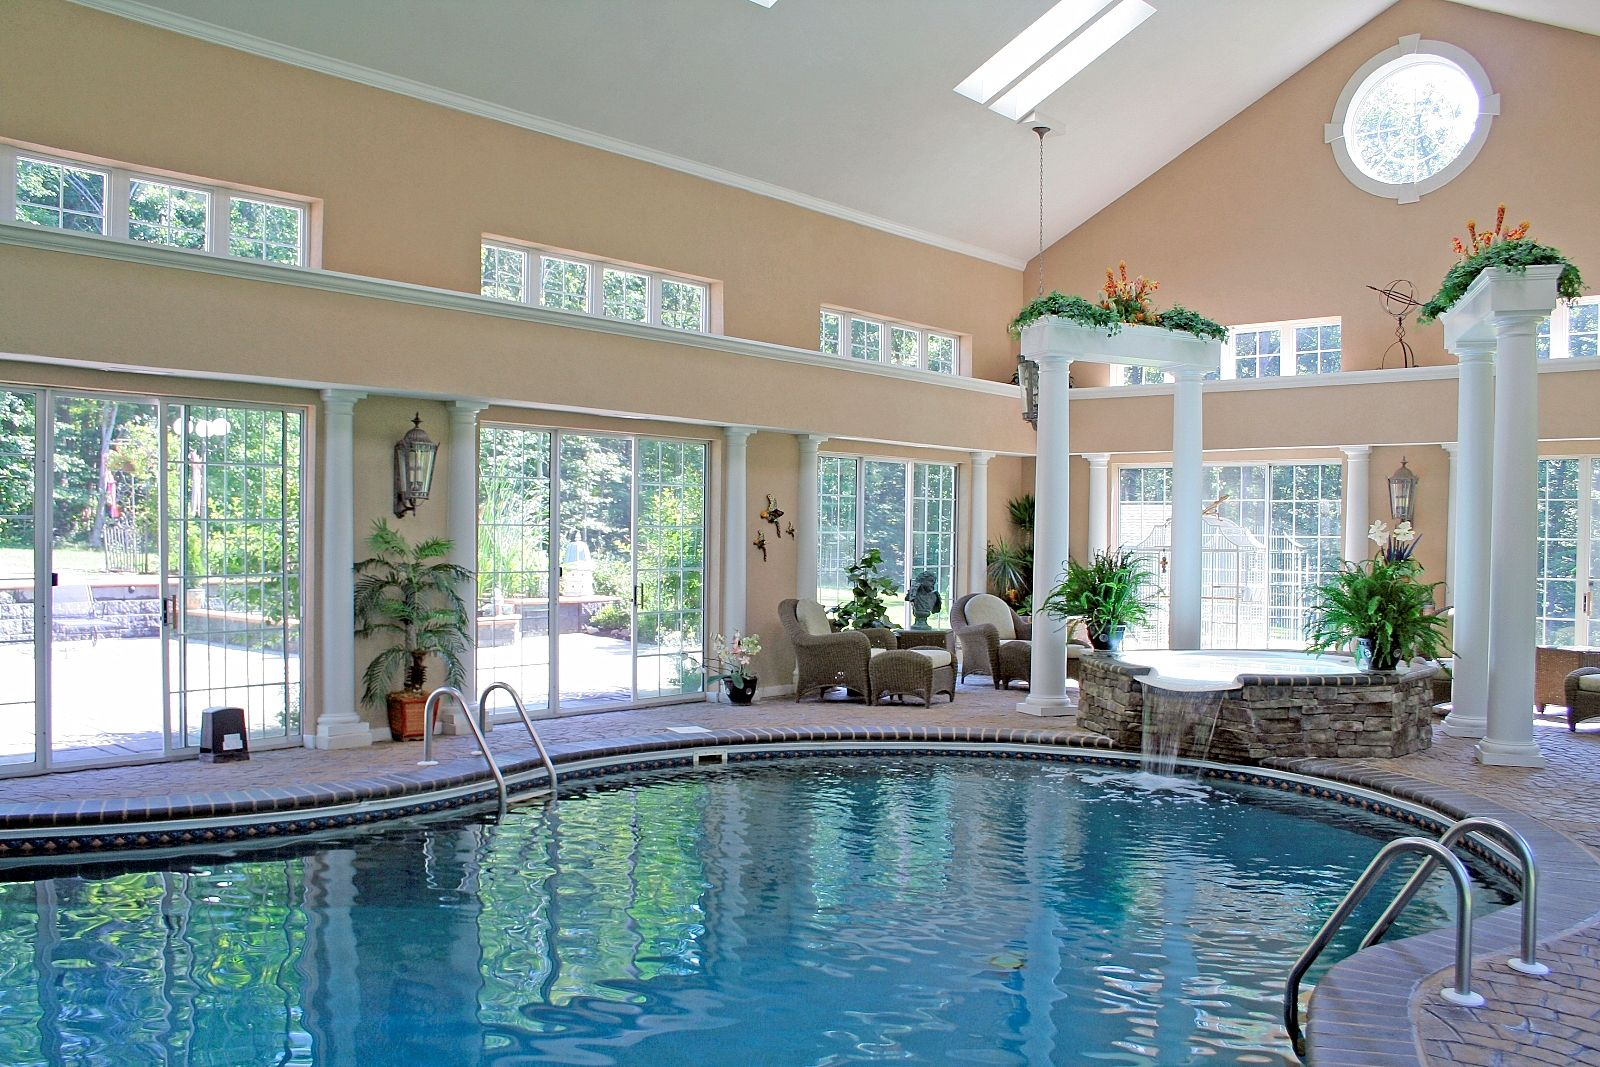 Indoor Home Pool The House Swimming Pool Will Not Make The Home Become Perfect If